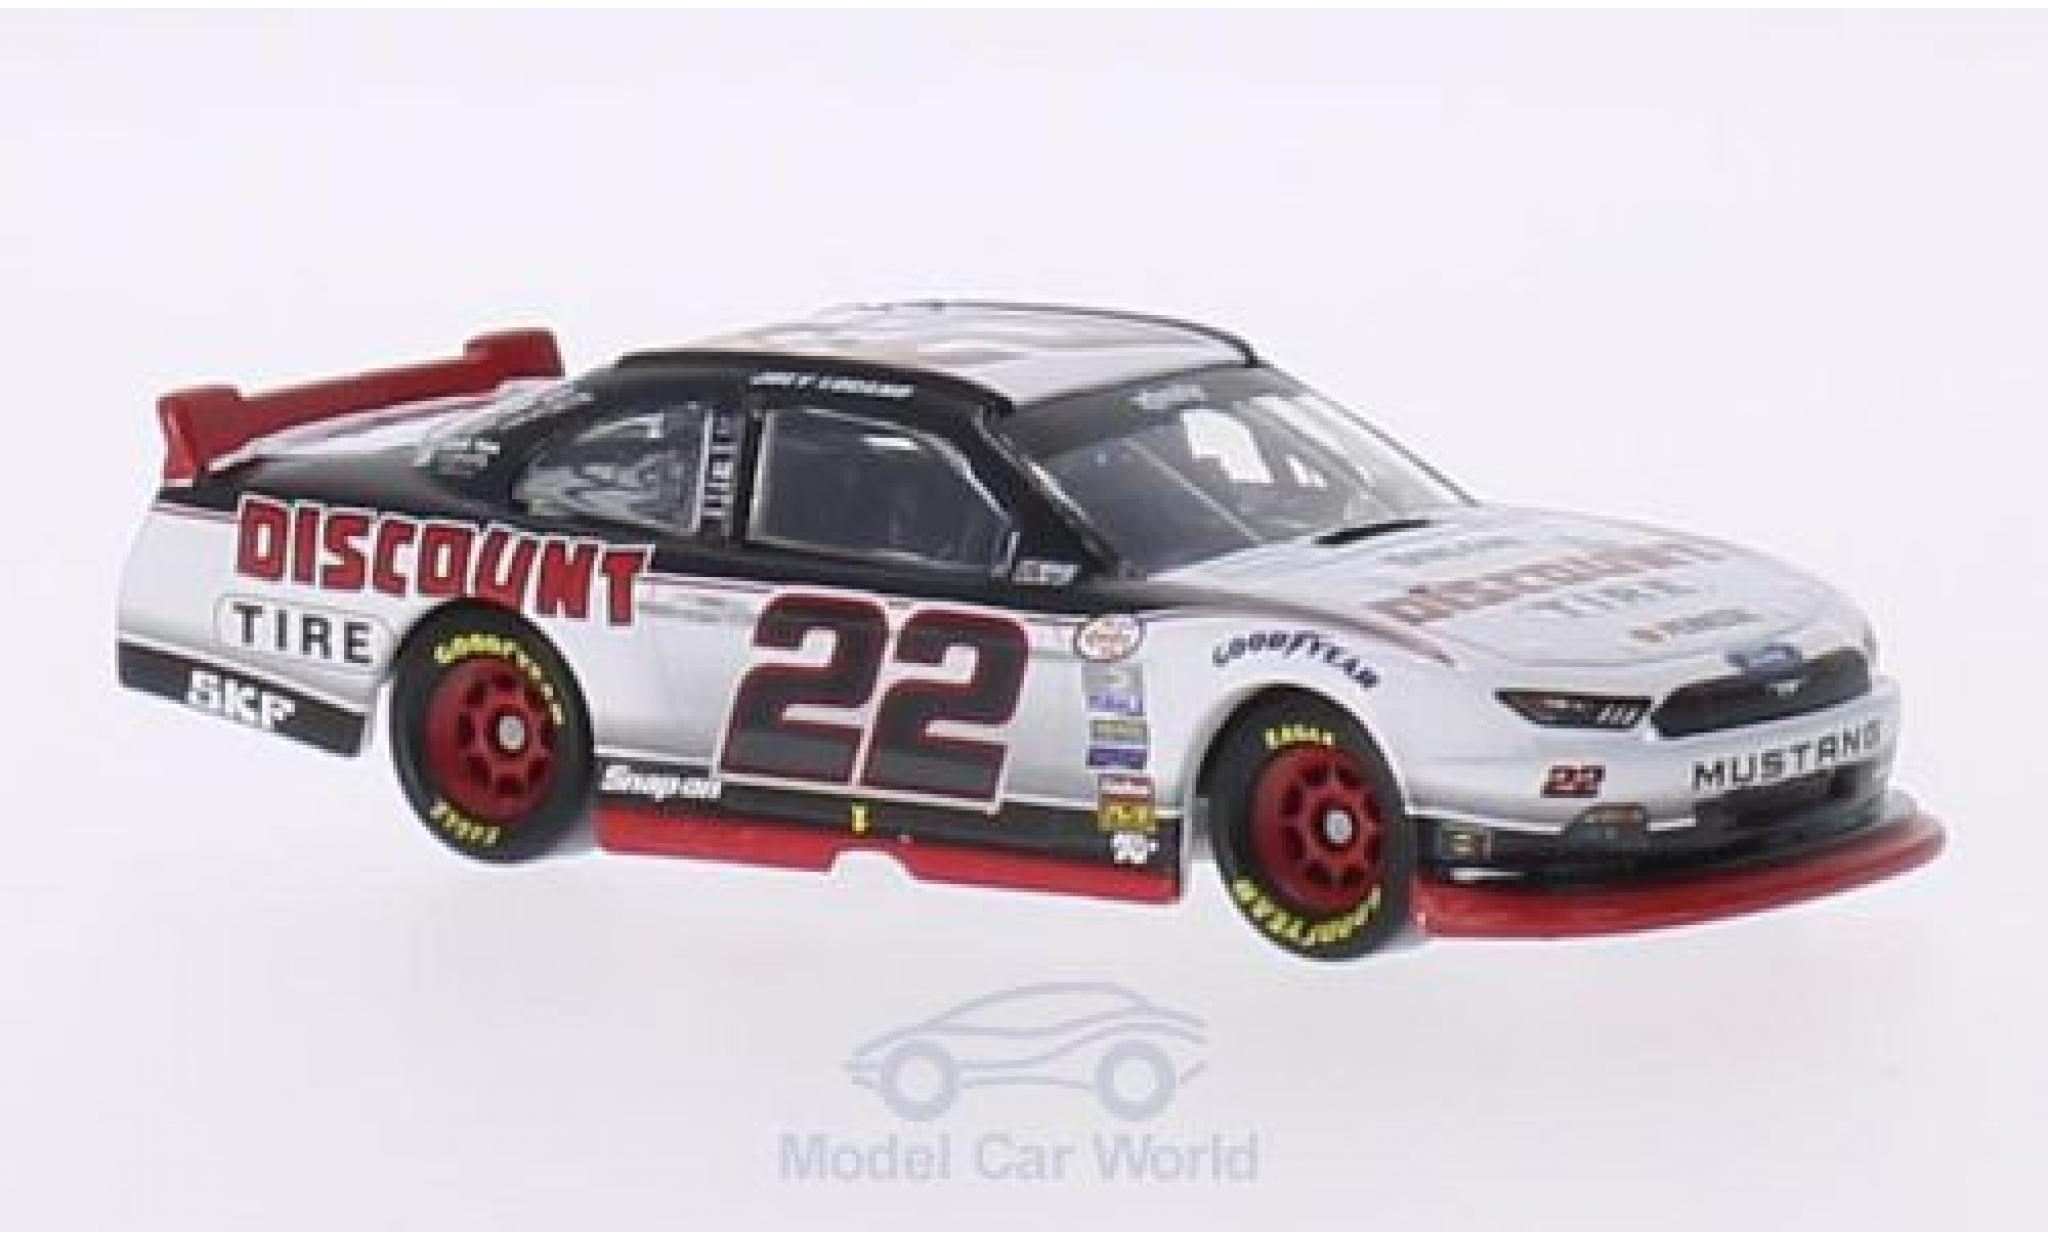 Ford Mustang 1/64 Lionel Racing No.22 Team Penske Discount Tire Nascar 2016 J.Logano